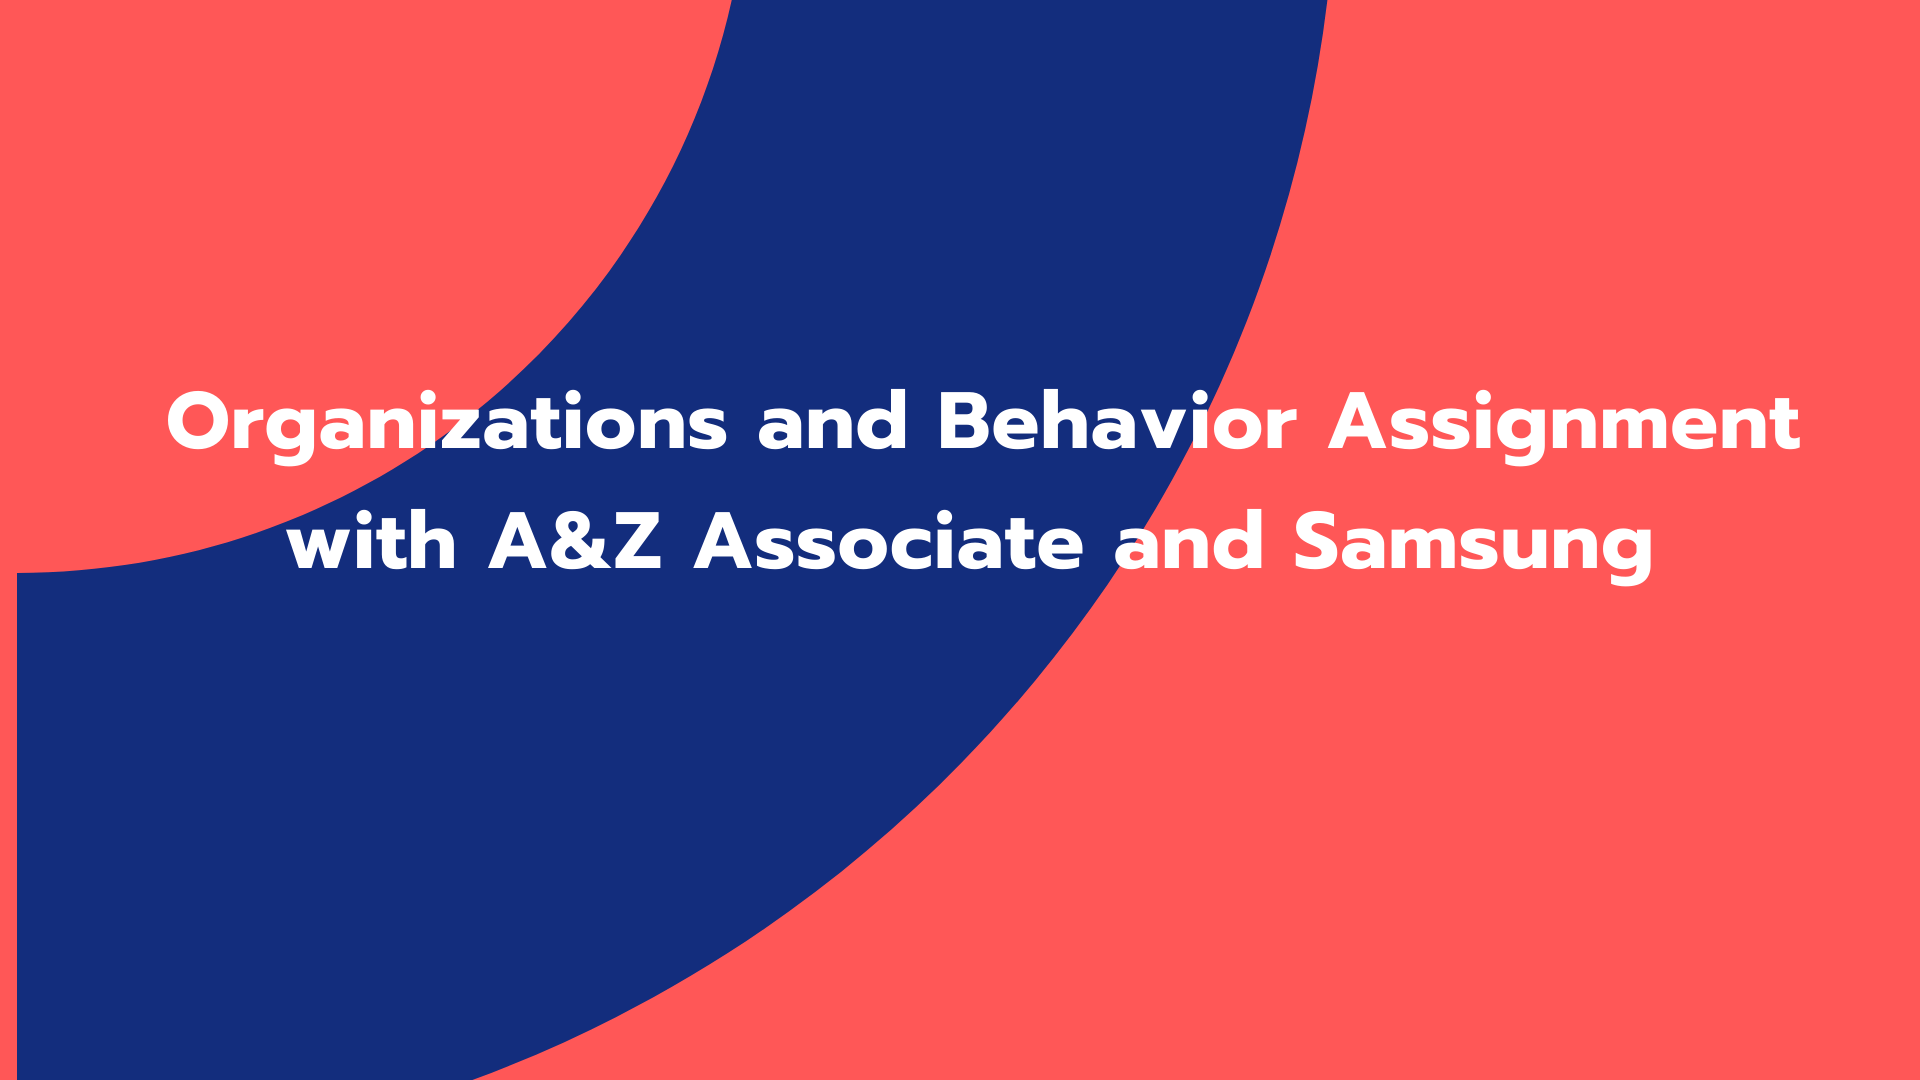 Assignment on The Organizations and Behaviors